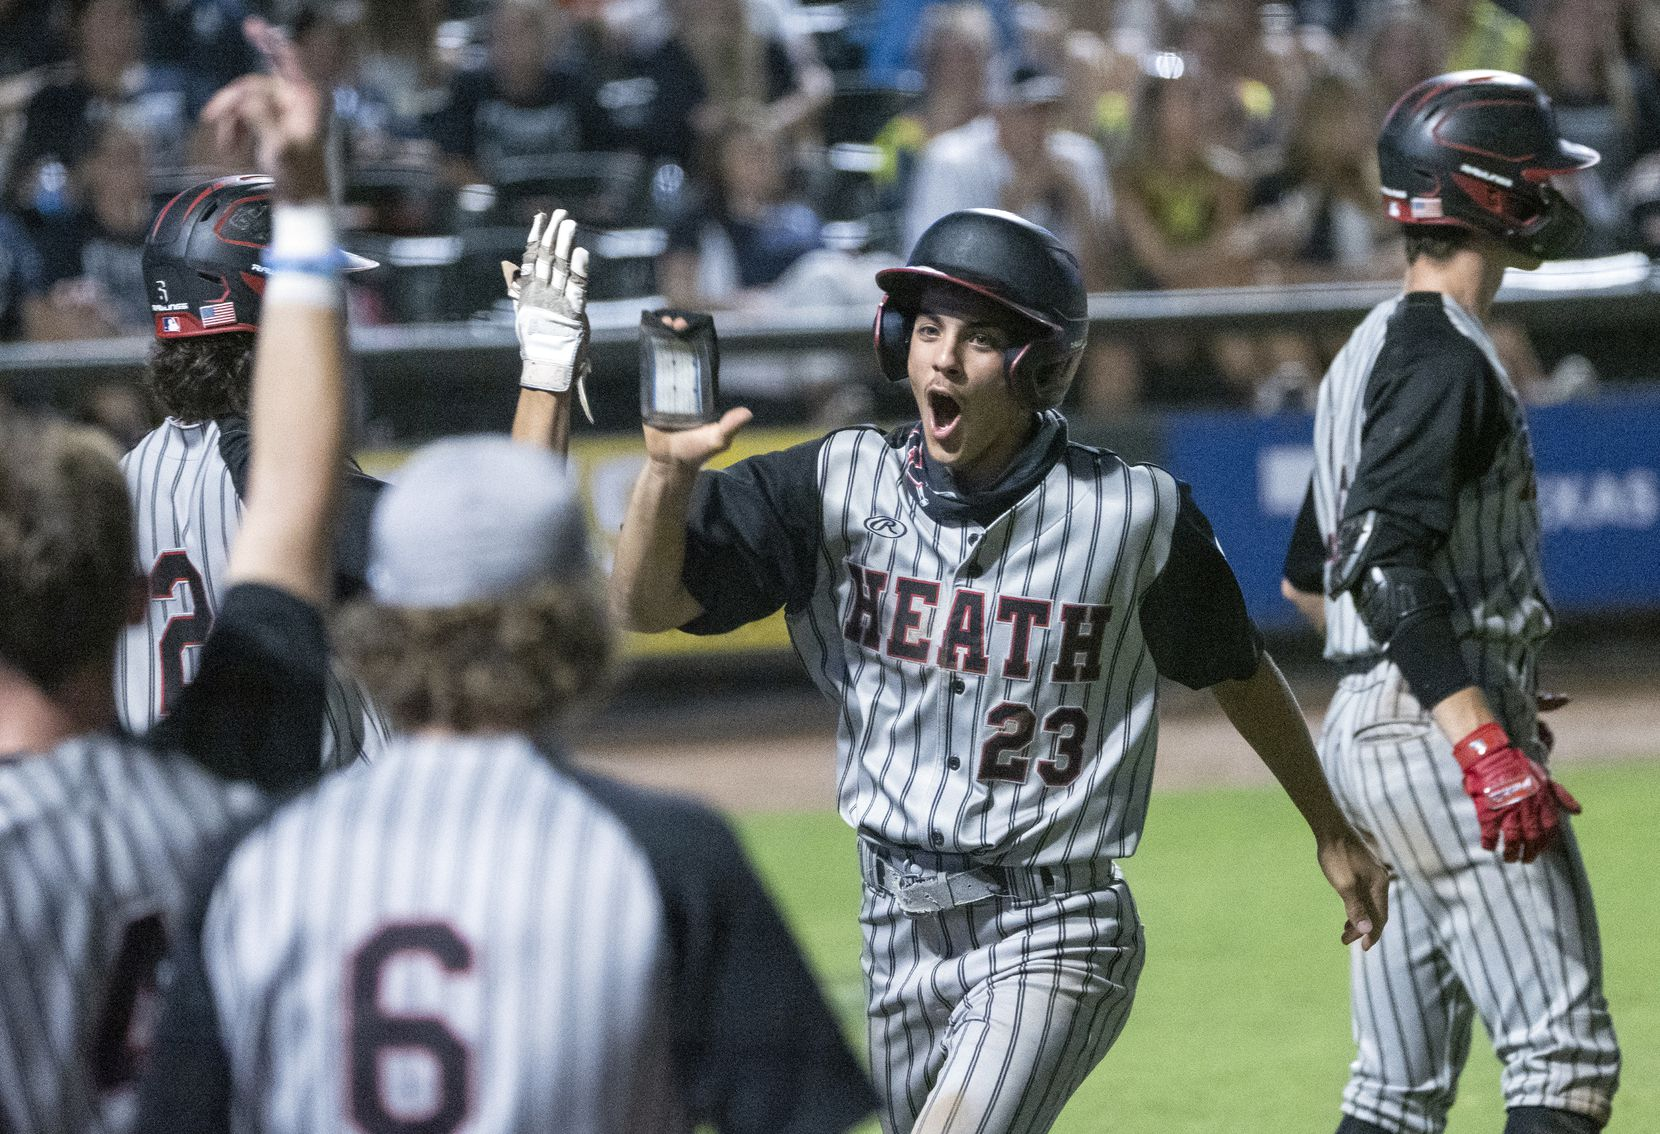 Rockwell-Heath Gage Barkley, (23), celebrates with teammates after scoring against Comal Smithson Valley during the sixth inning of the 2021 UIL 6A state baseball semifinals held, Friday, June 11, 2021, in Round Rock, Texas. Rockwell-Heath defeated Comal Smithson Valley 8-4.    (Rodolfo Gonzalez/Special Contributor)